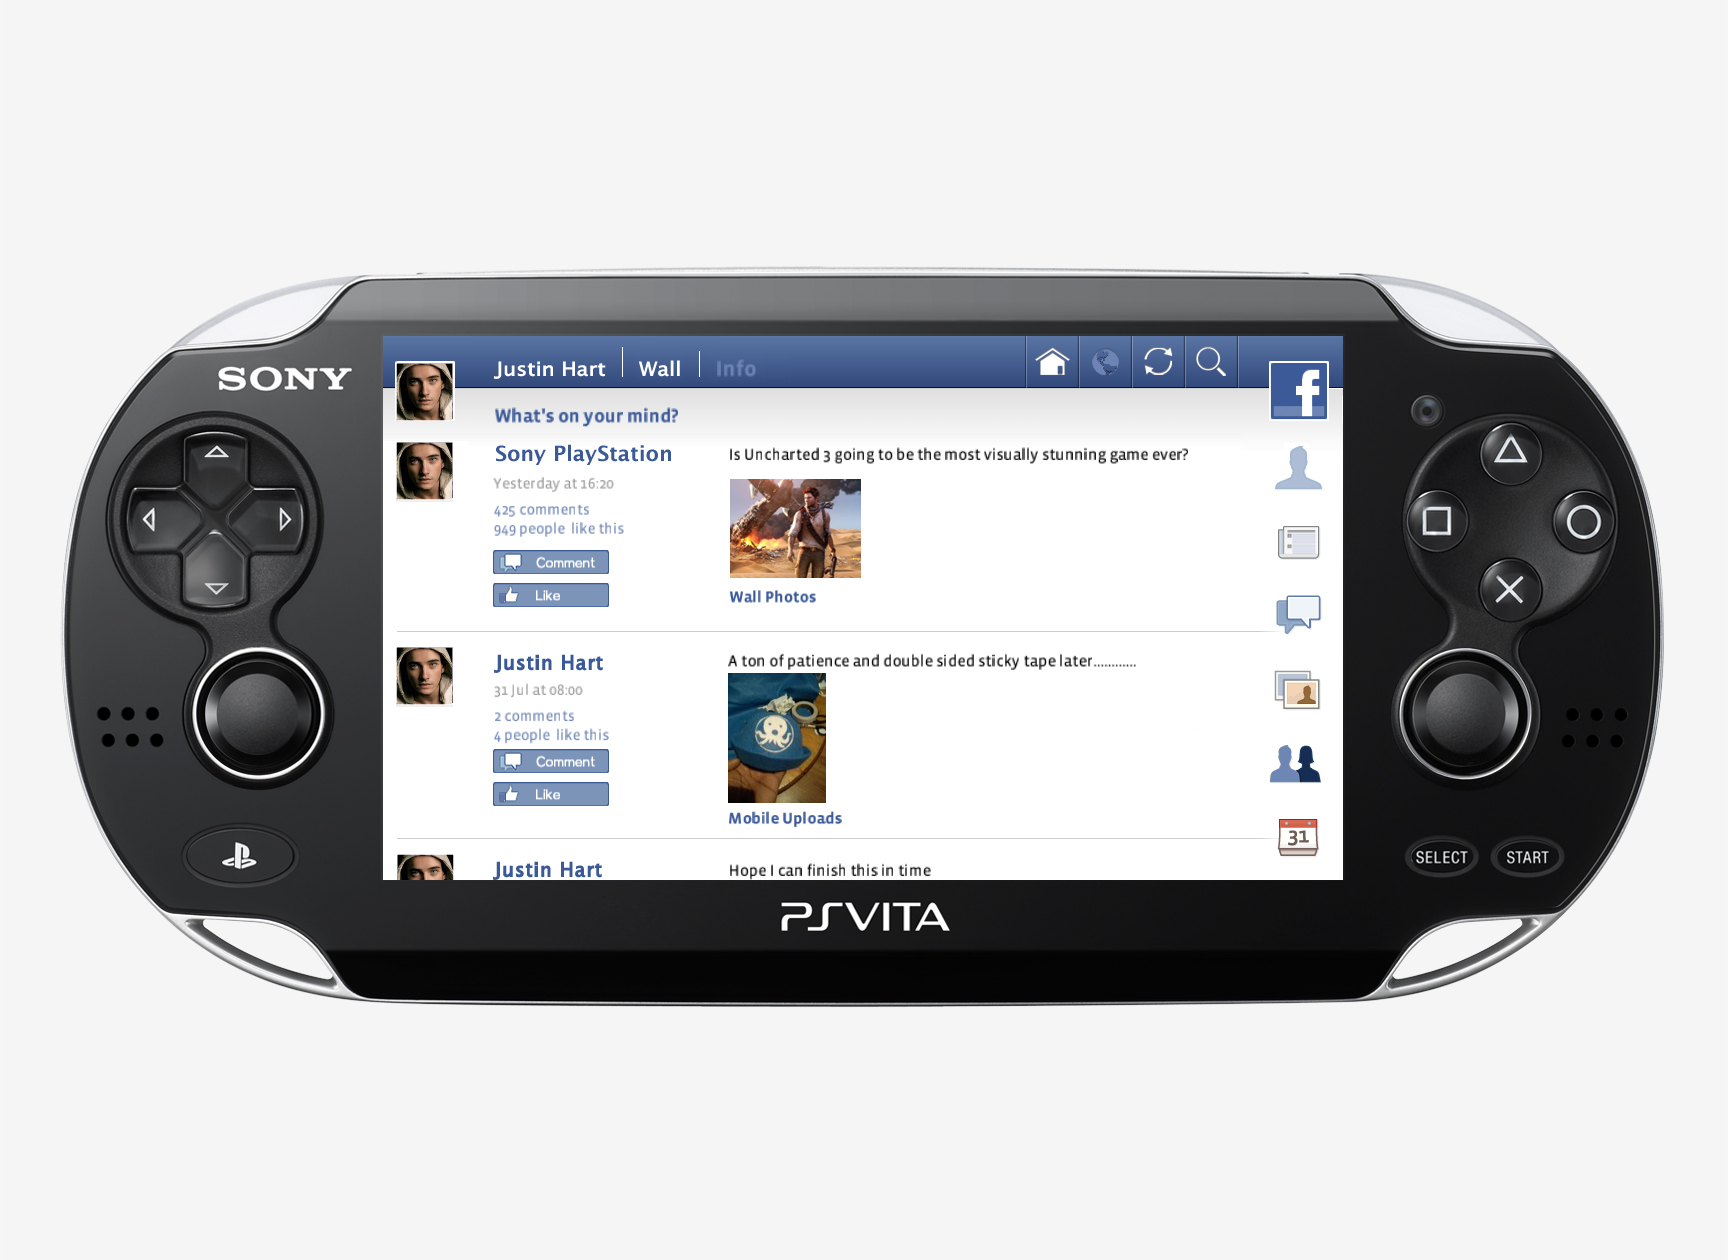 [Oficial] Guia PSB do PSVita PlayStation-Vita_2011_08-18-11_004